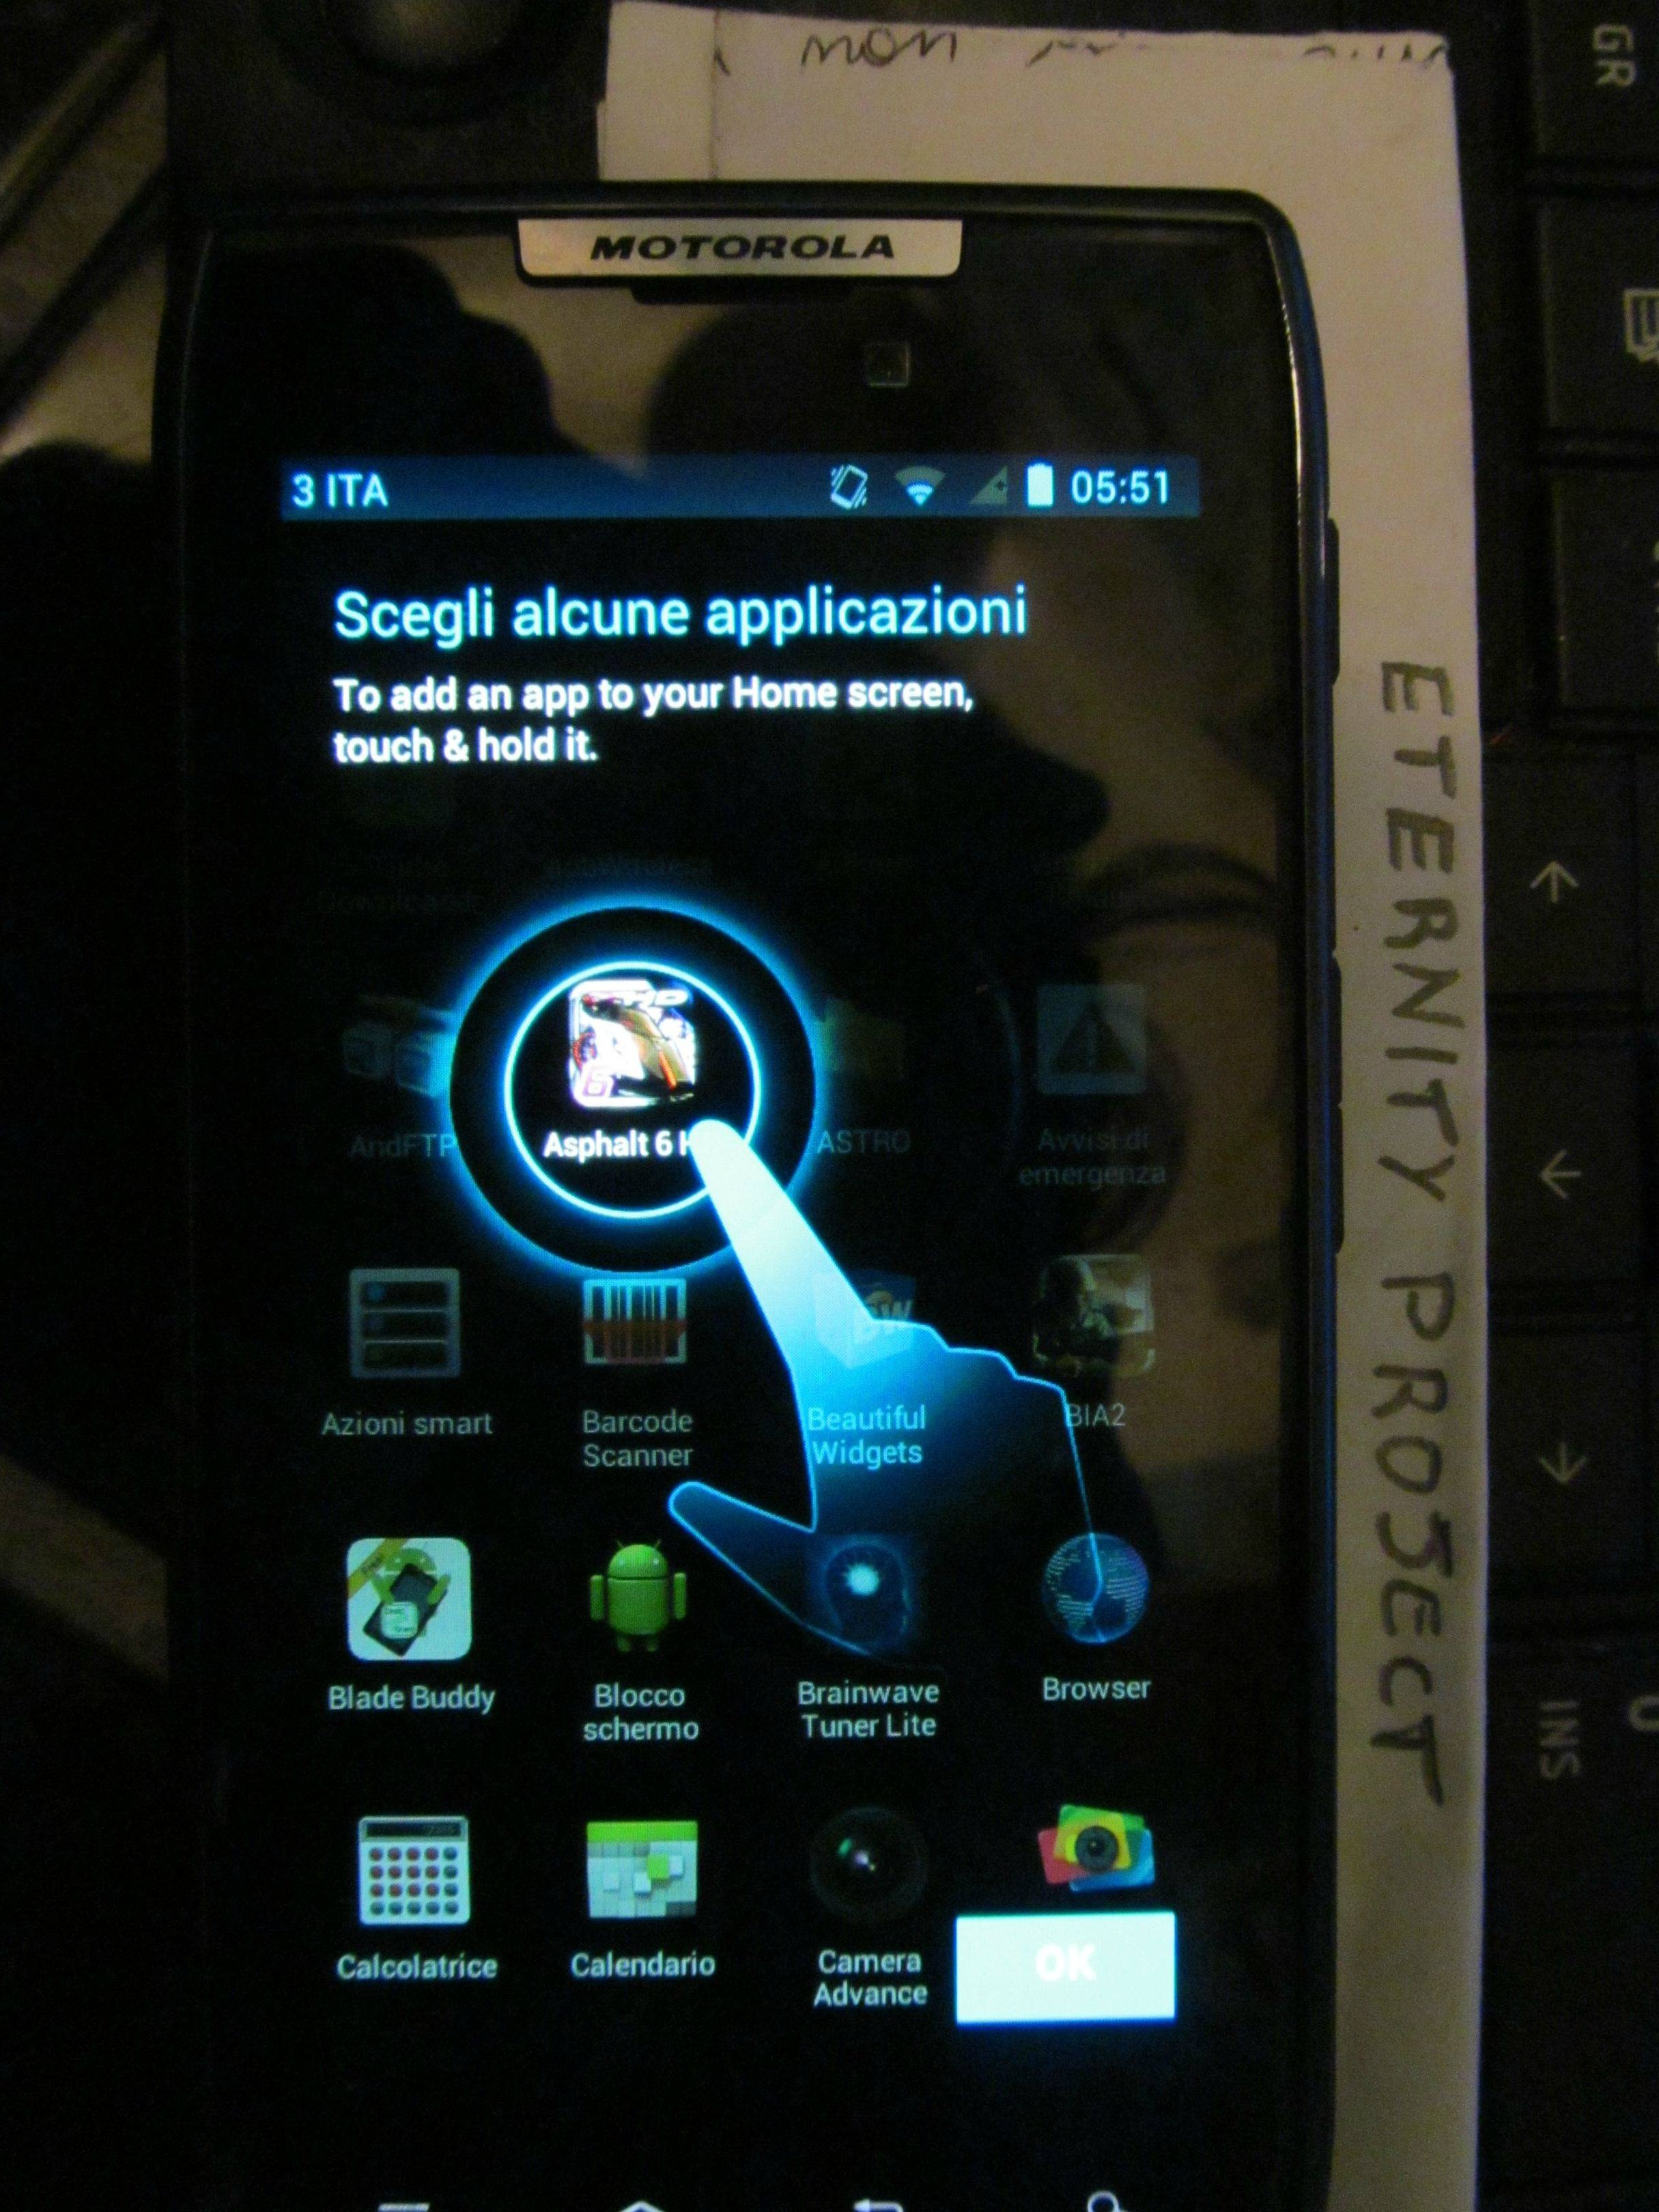 Download: Erste Motorola RAZR Ice Cream Sandwich ROM aufgetaucht (Screenshots)